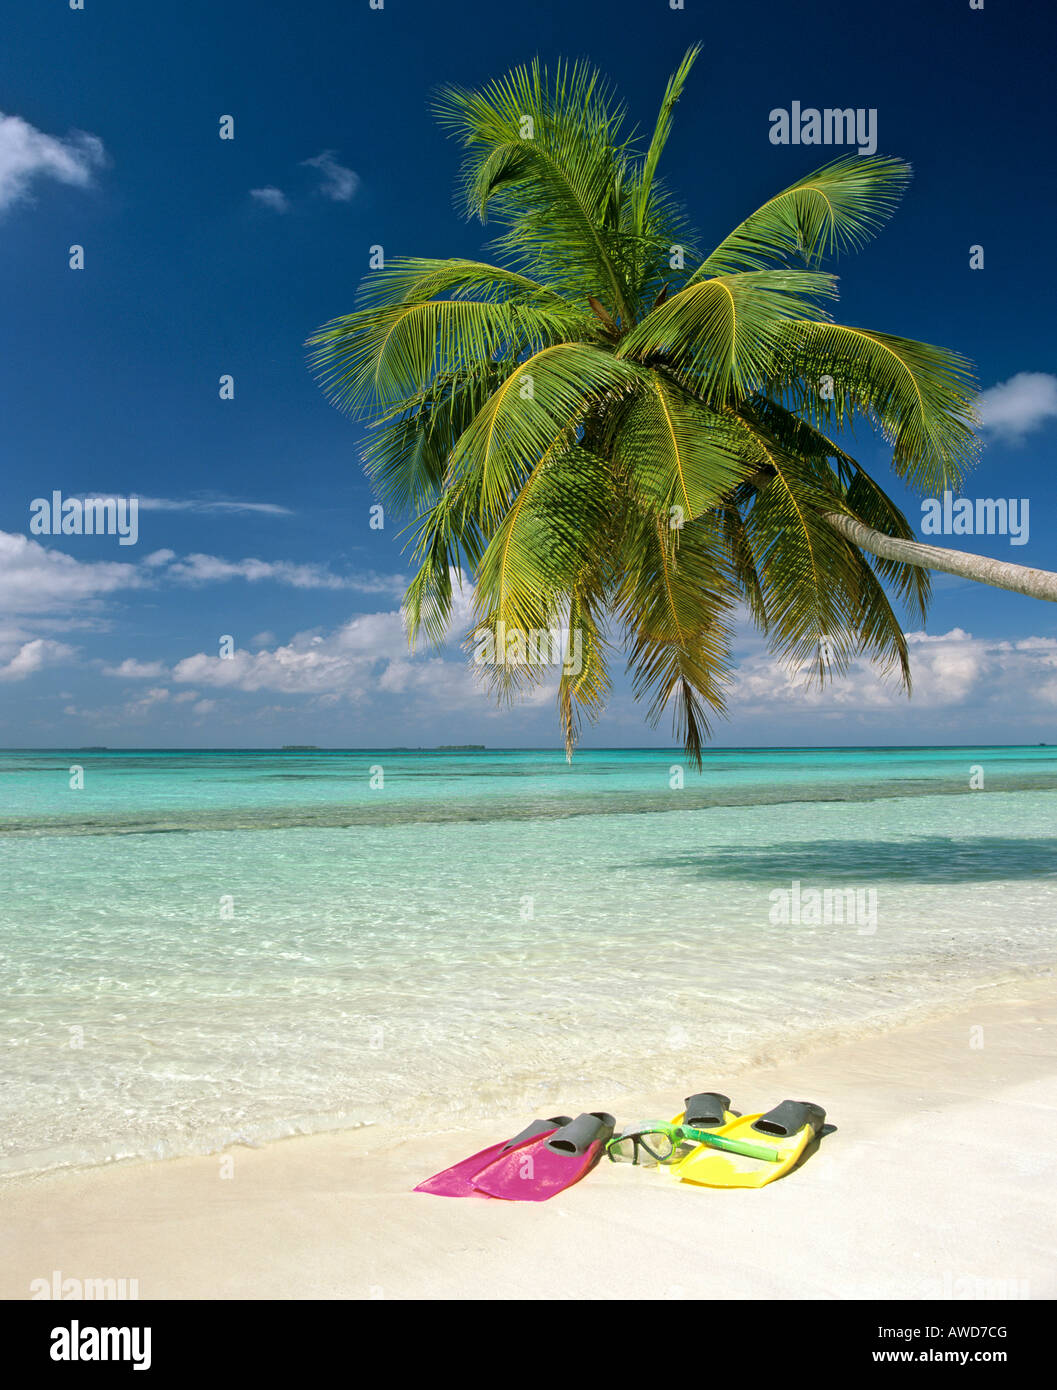 Palm tree, snorkeling gear, turquoise waters and beach, Maldives, Indian Ocean - Stock Image